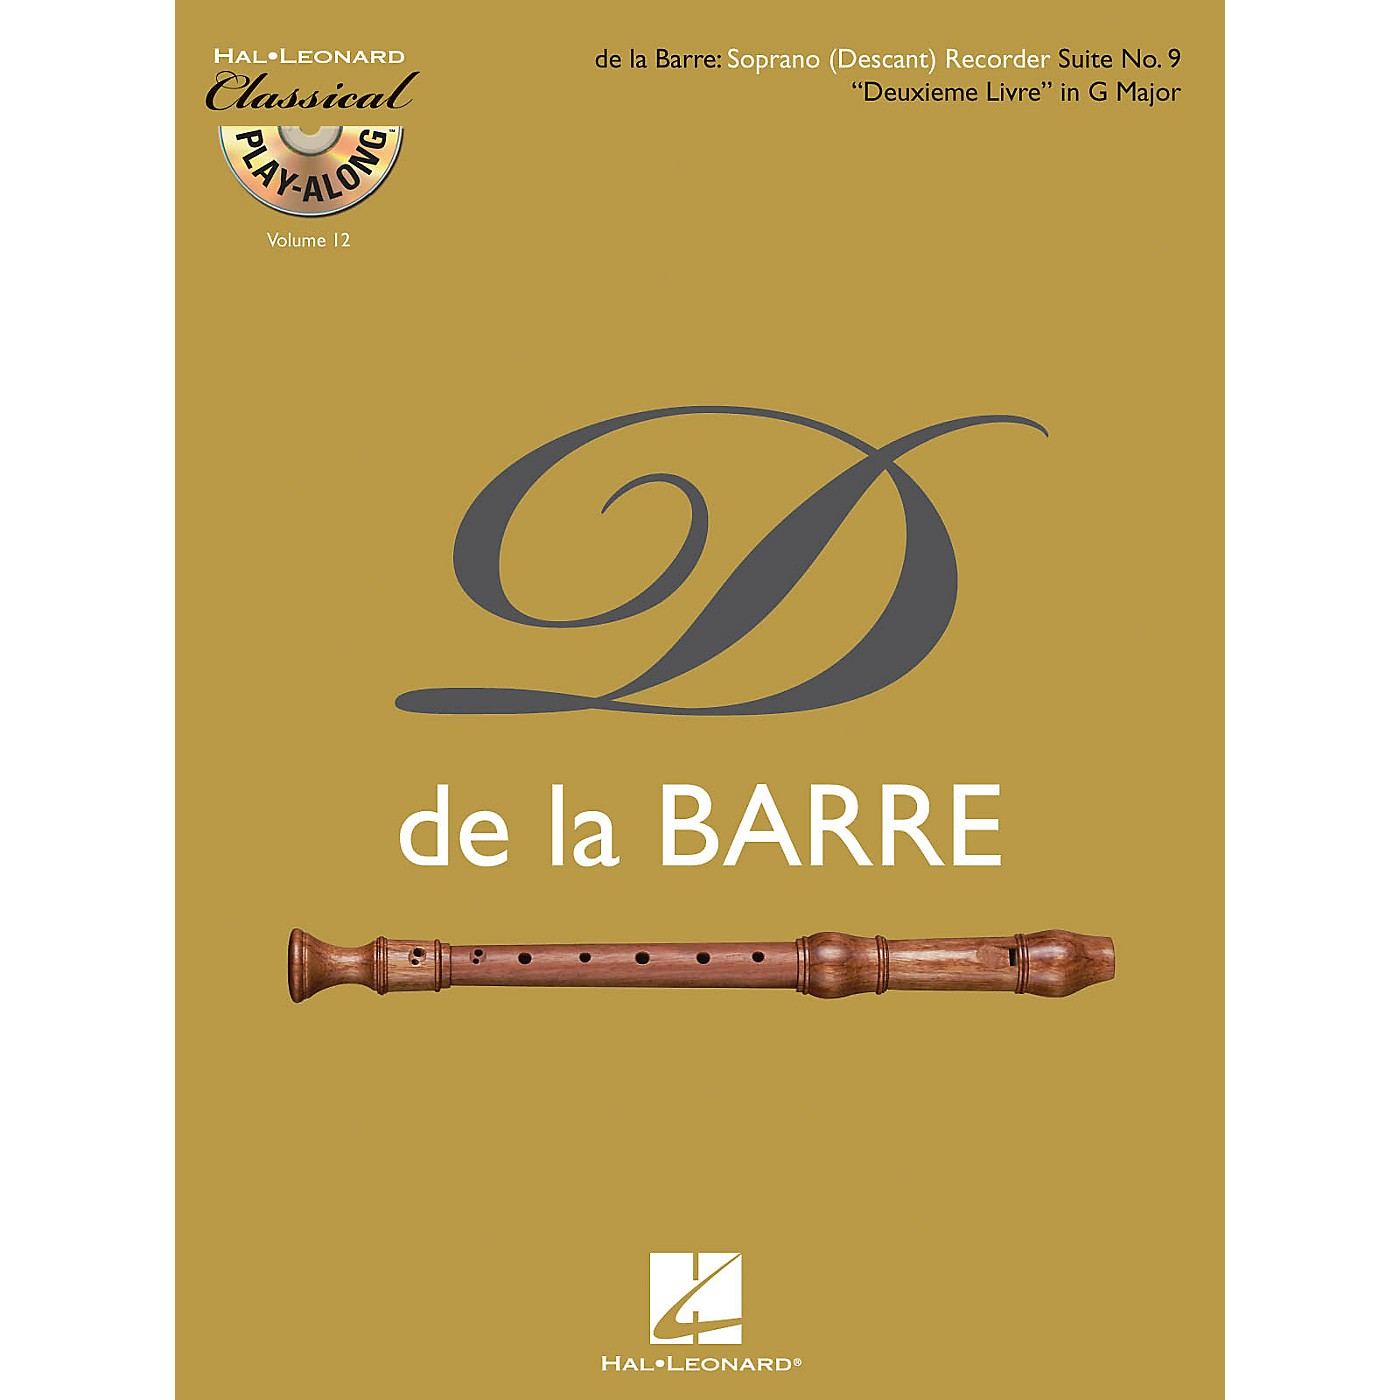 Hal Leonard Soprano (Descant) Recorder Suite No. 9 Deuxieme Livre in G Major Classical Play-Along Softcover with CD thumbnail